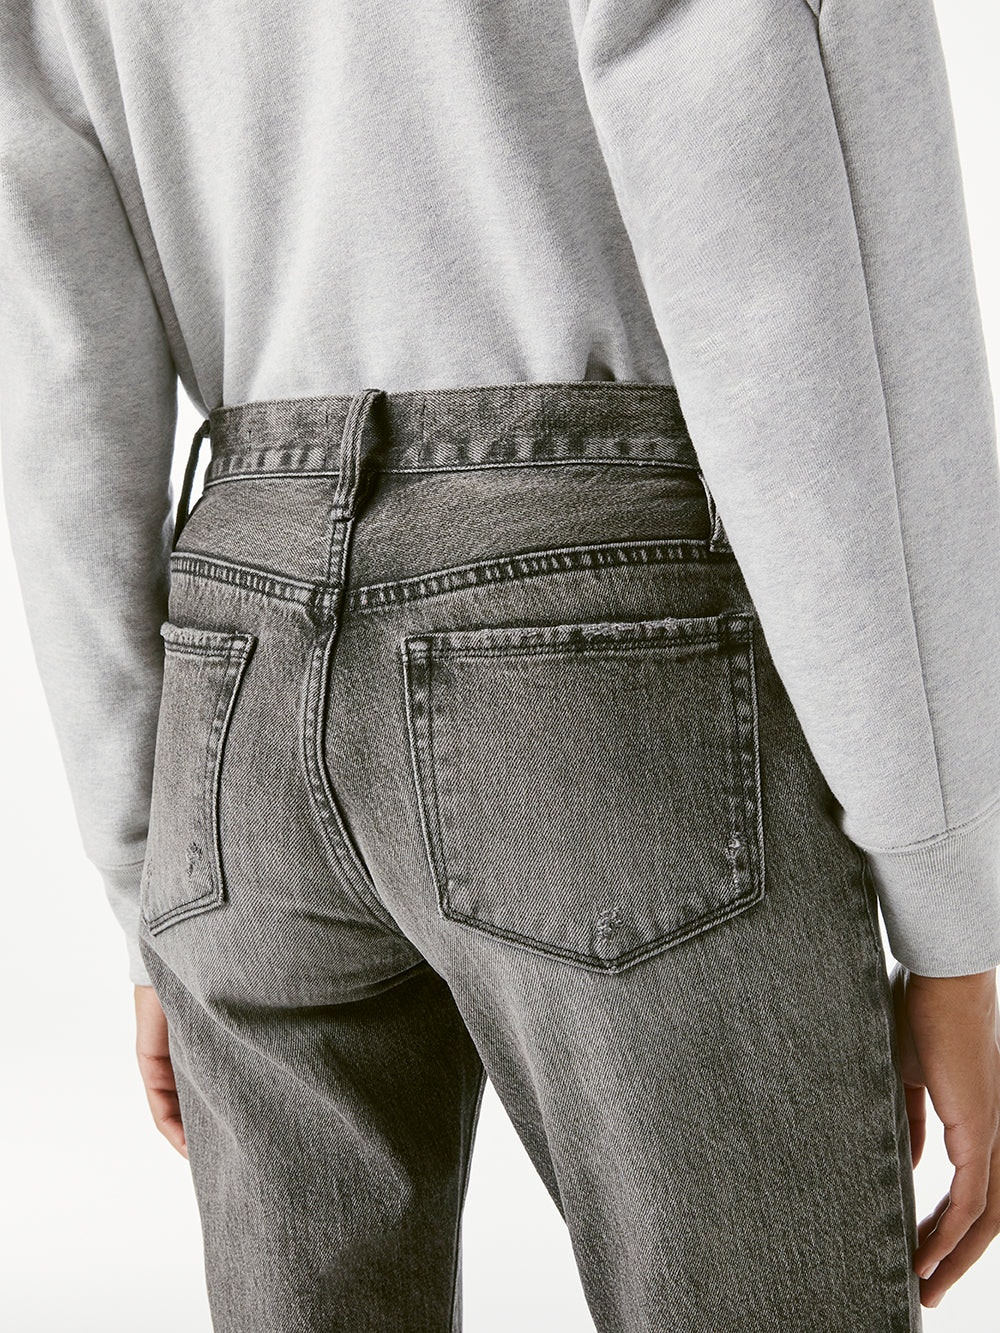 jeans detail view 2